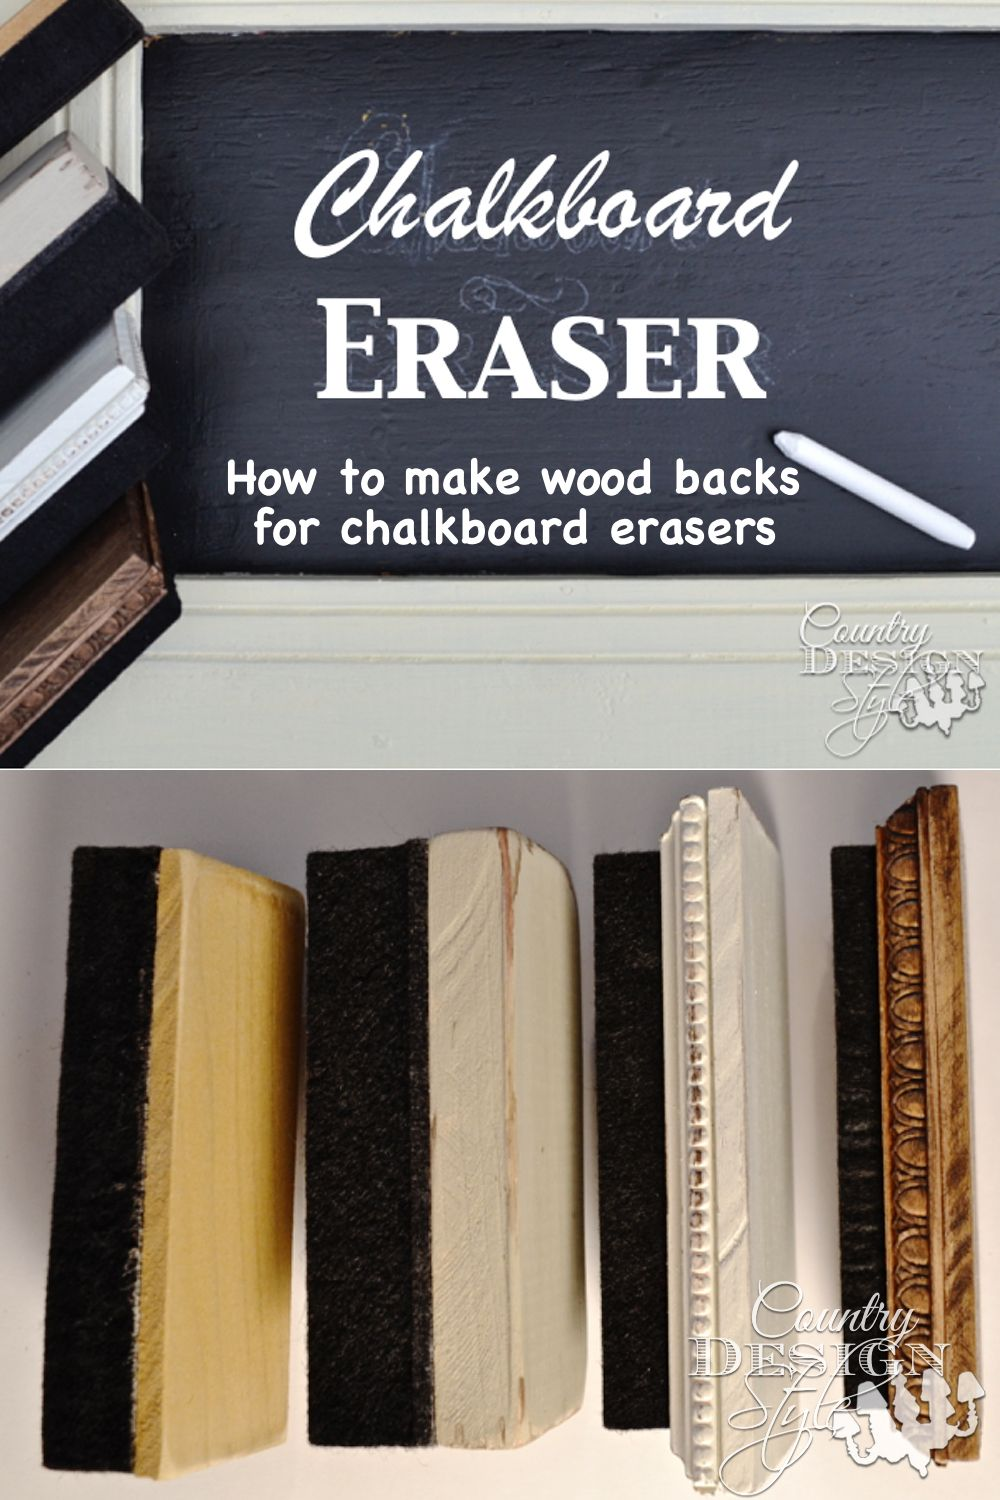 How To Diy Your Chalkboard Eraser With Vintage Inspired Wood Back Country Design Style Diy Chalkboard Quote Diy Farmhouse Diy Projects